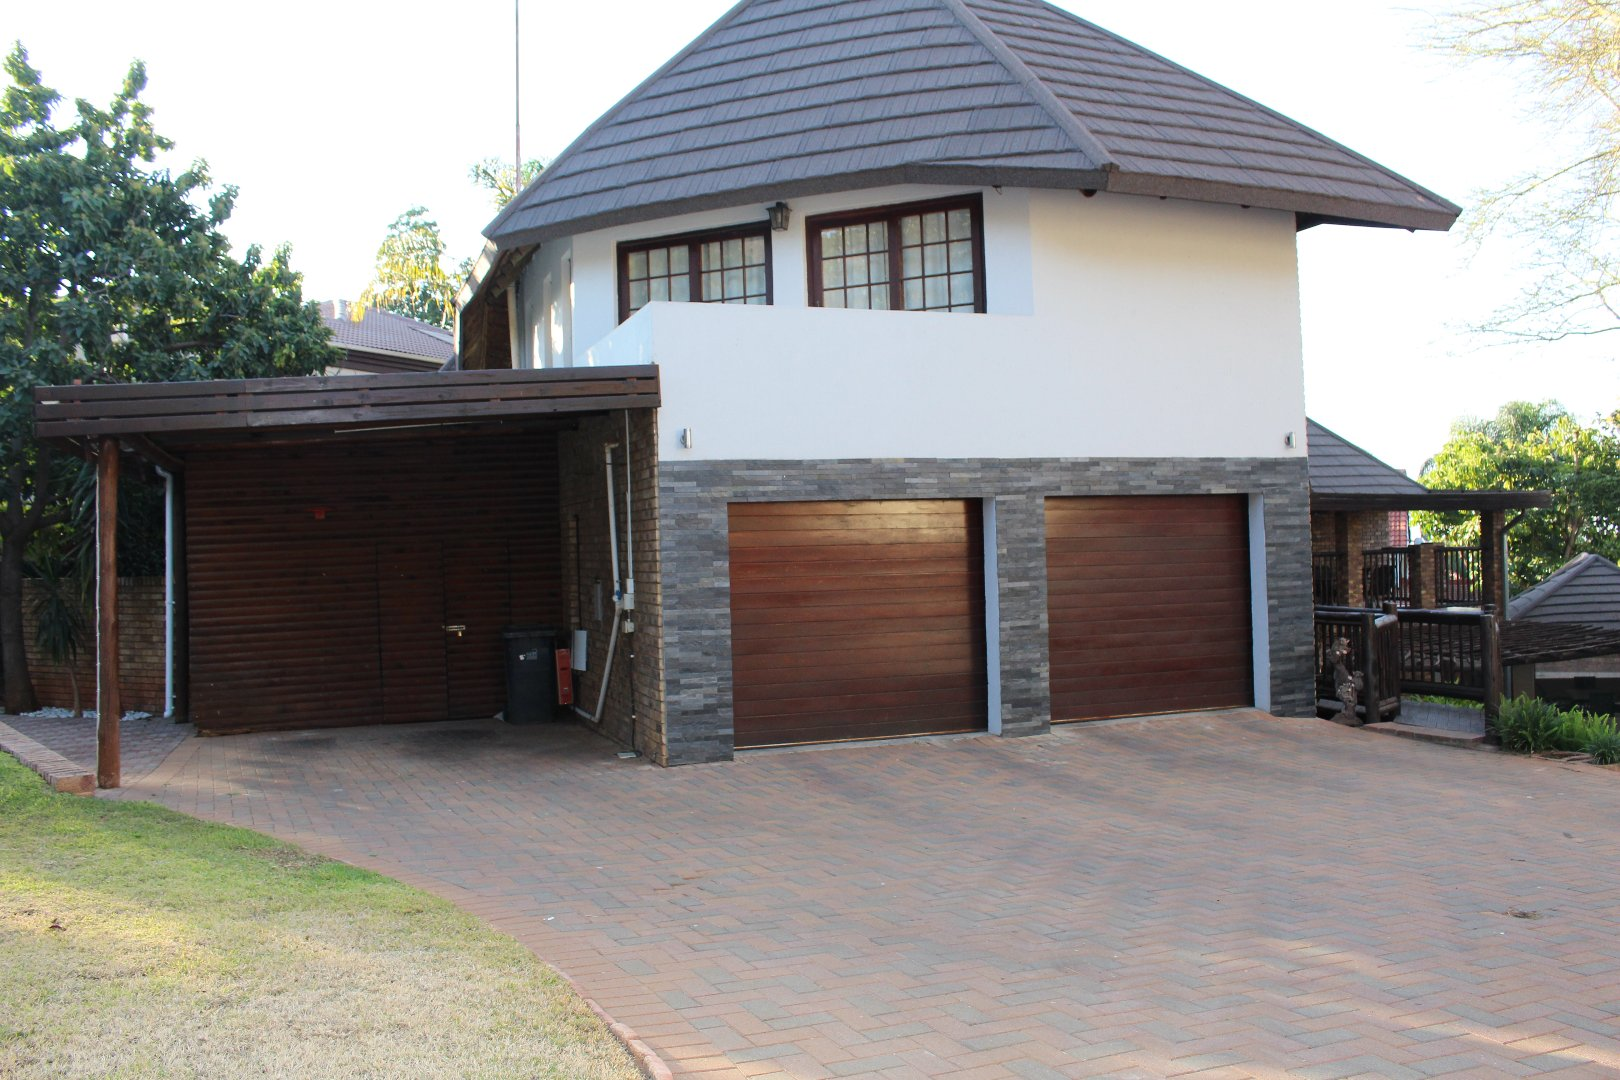 4 Bedroom House for sale in Montana Park ENT0058051 : photo#1